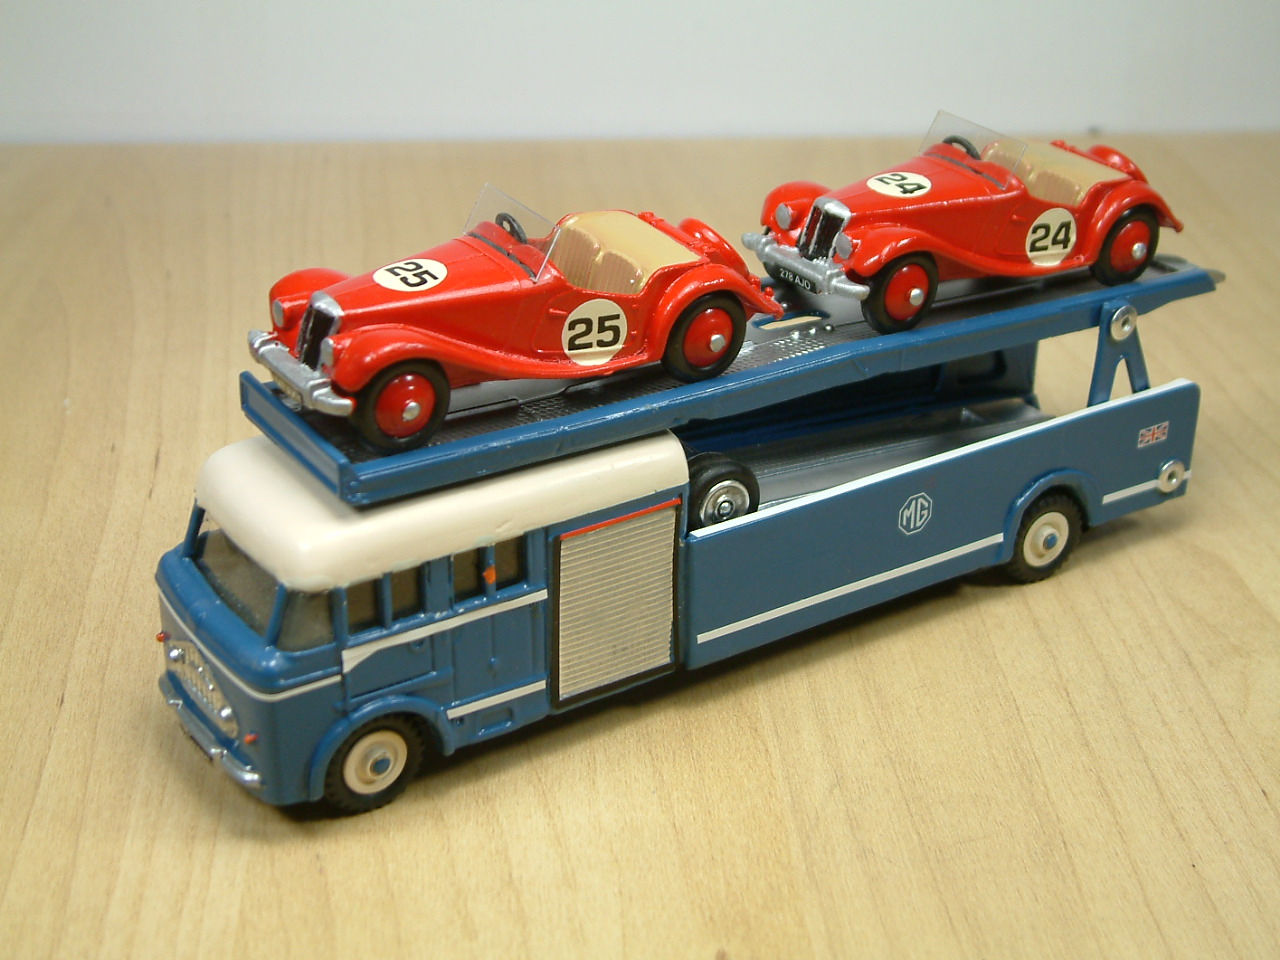 Dinky Bedford Mg Race Car Transporter Roland Ward Make Your Own Beautiful  HD Wallpapers, Images Over 1000+ [ralydesign.ml]